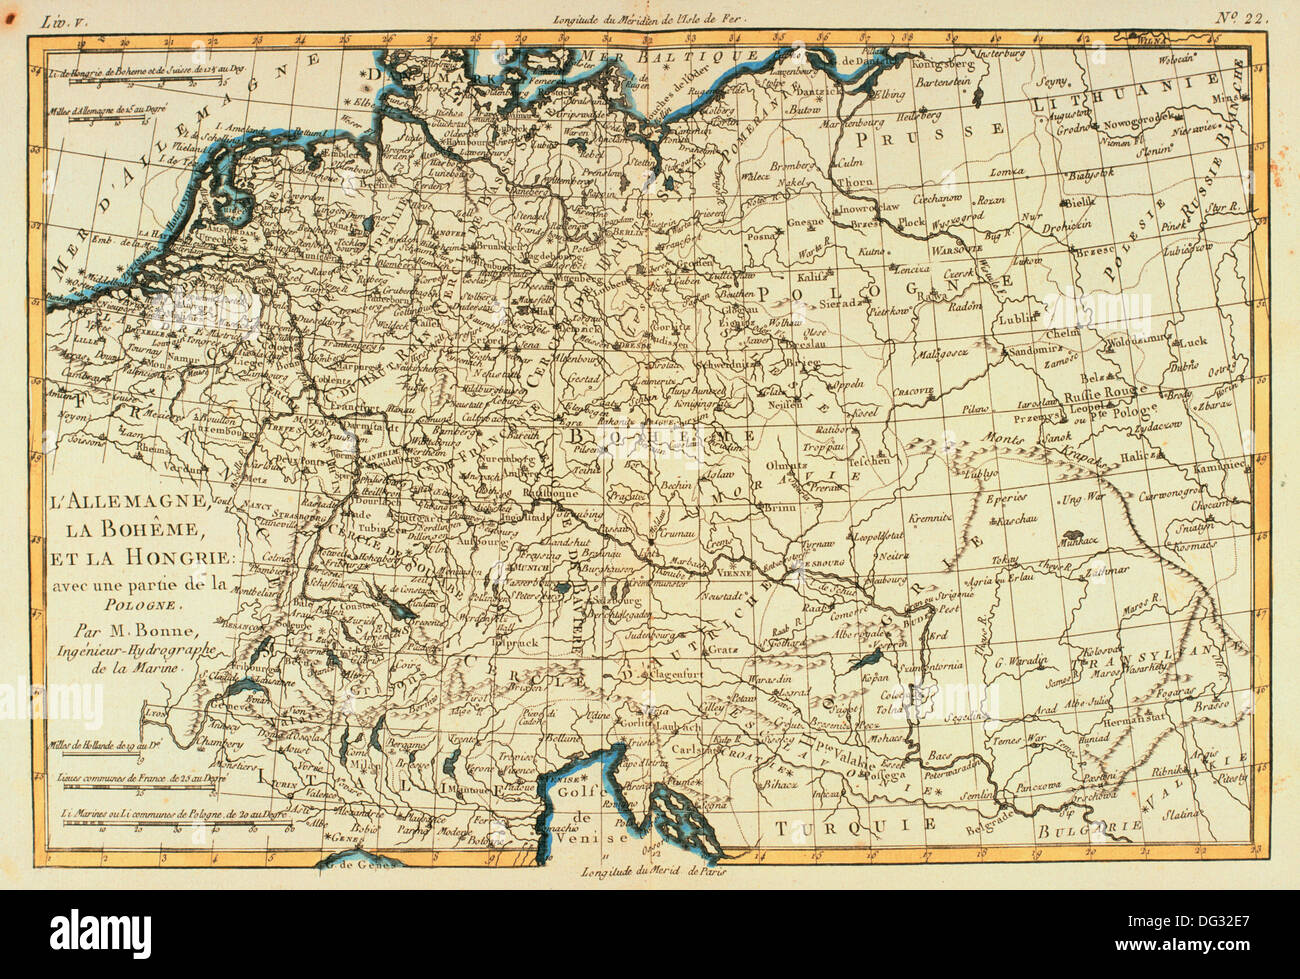 central europe germany bohemia and hungary 18th century map